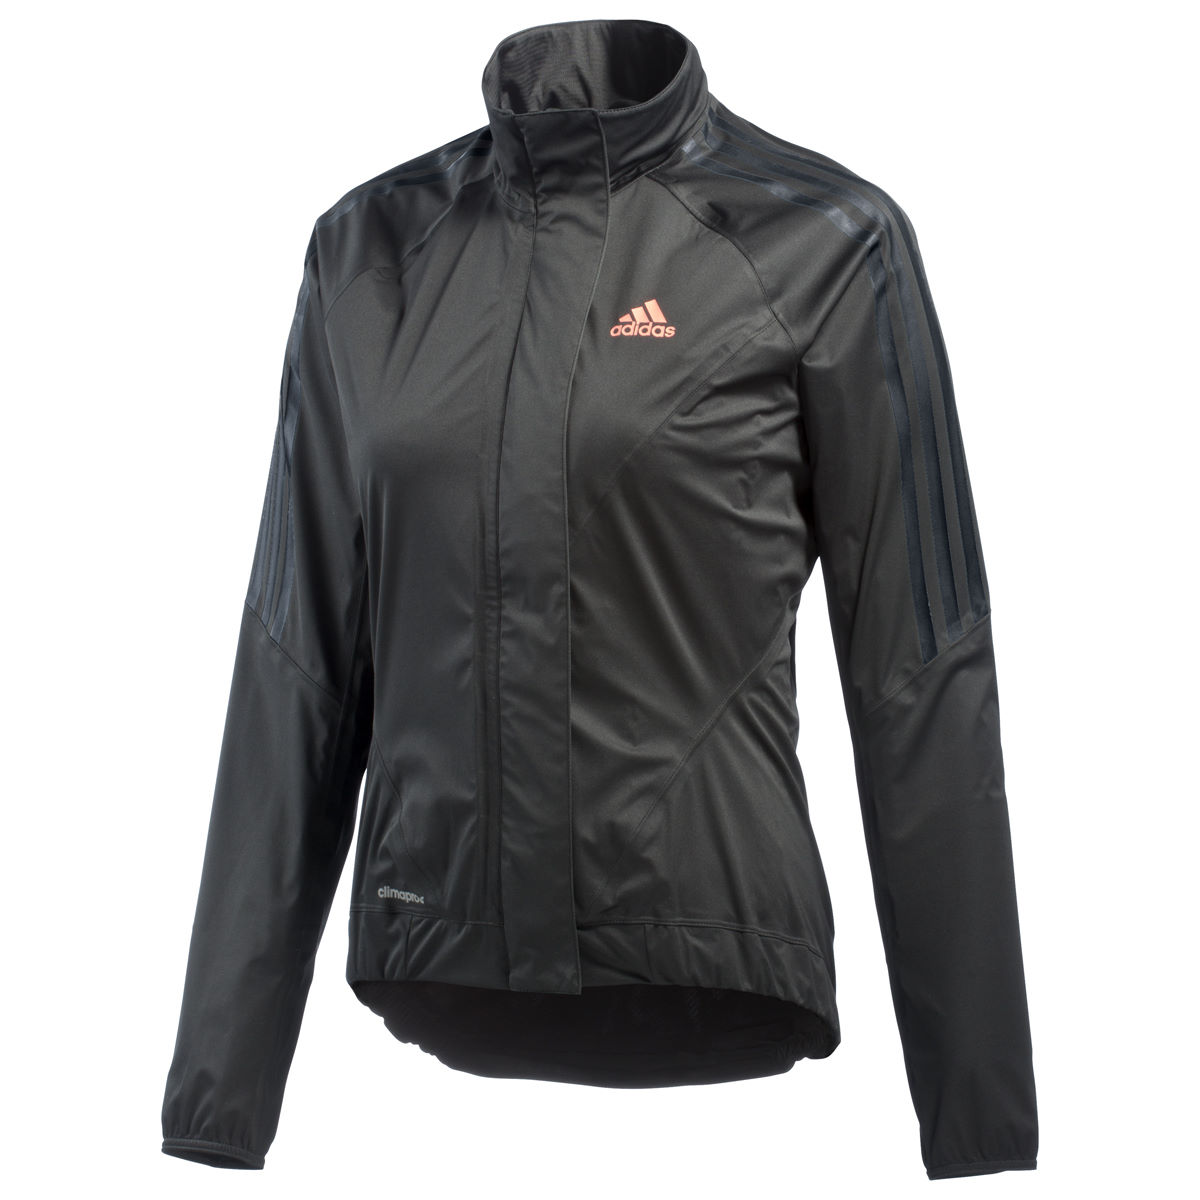 Adidas Women's Tour Waterproof Jacket   Cycling Waterproof Jackets